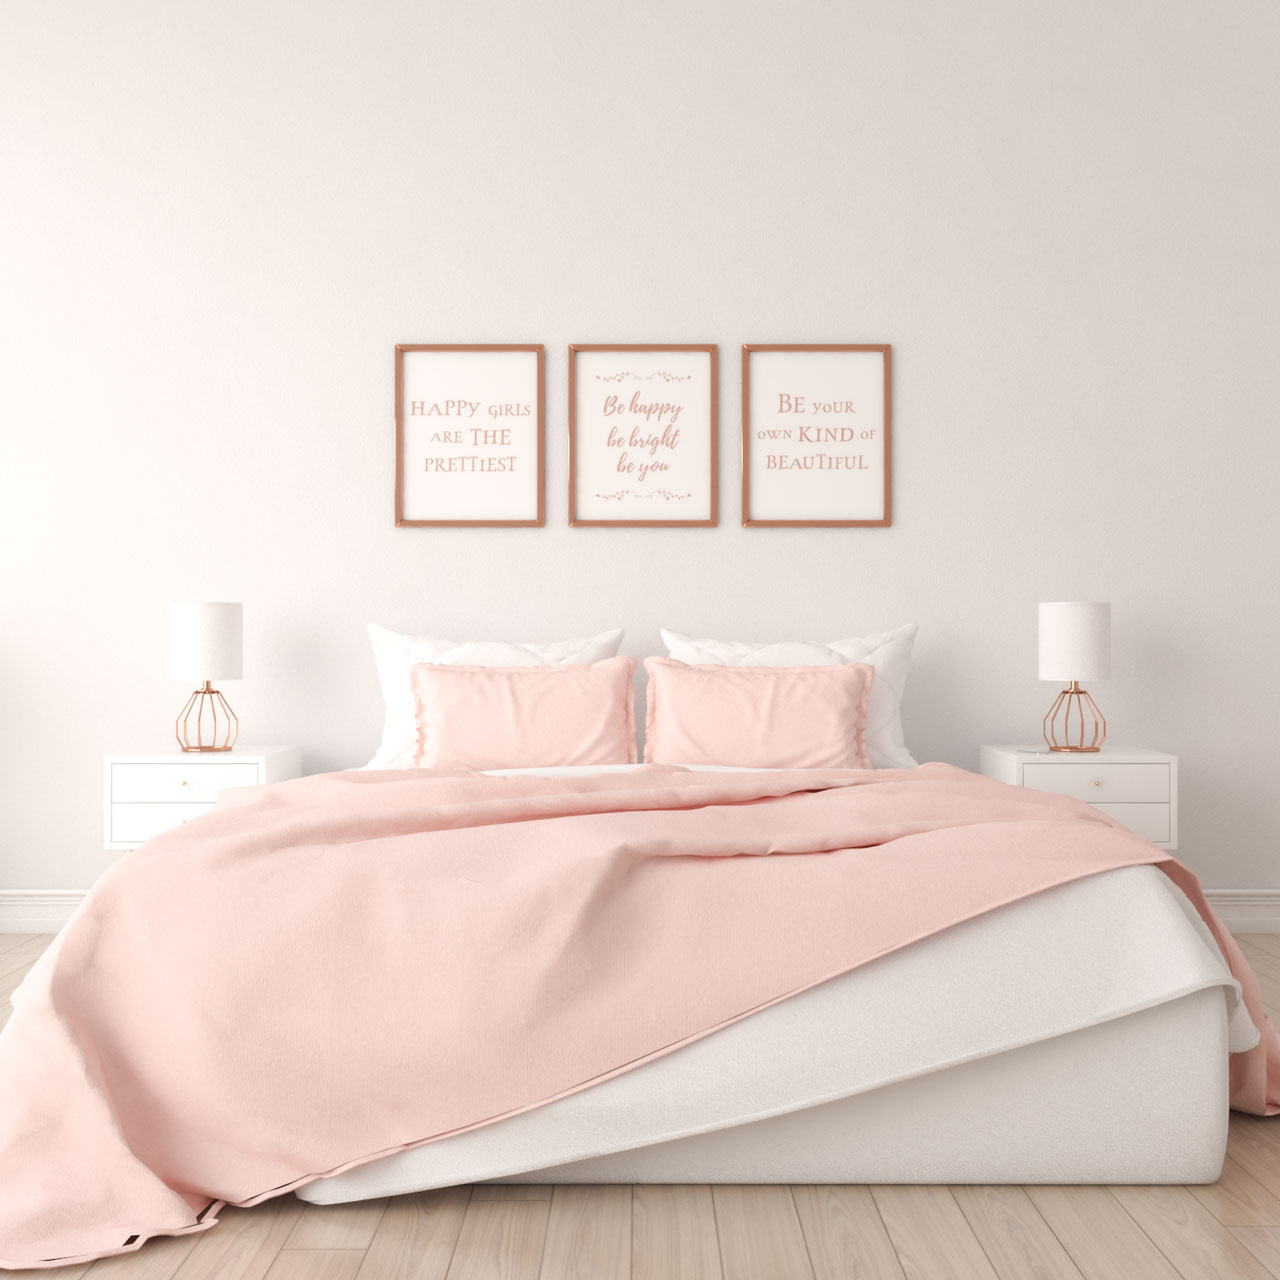 Rose gold wall art for bedroom